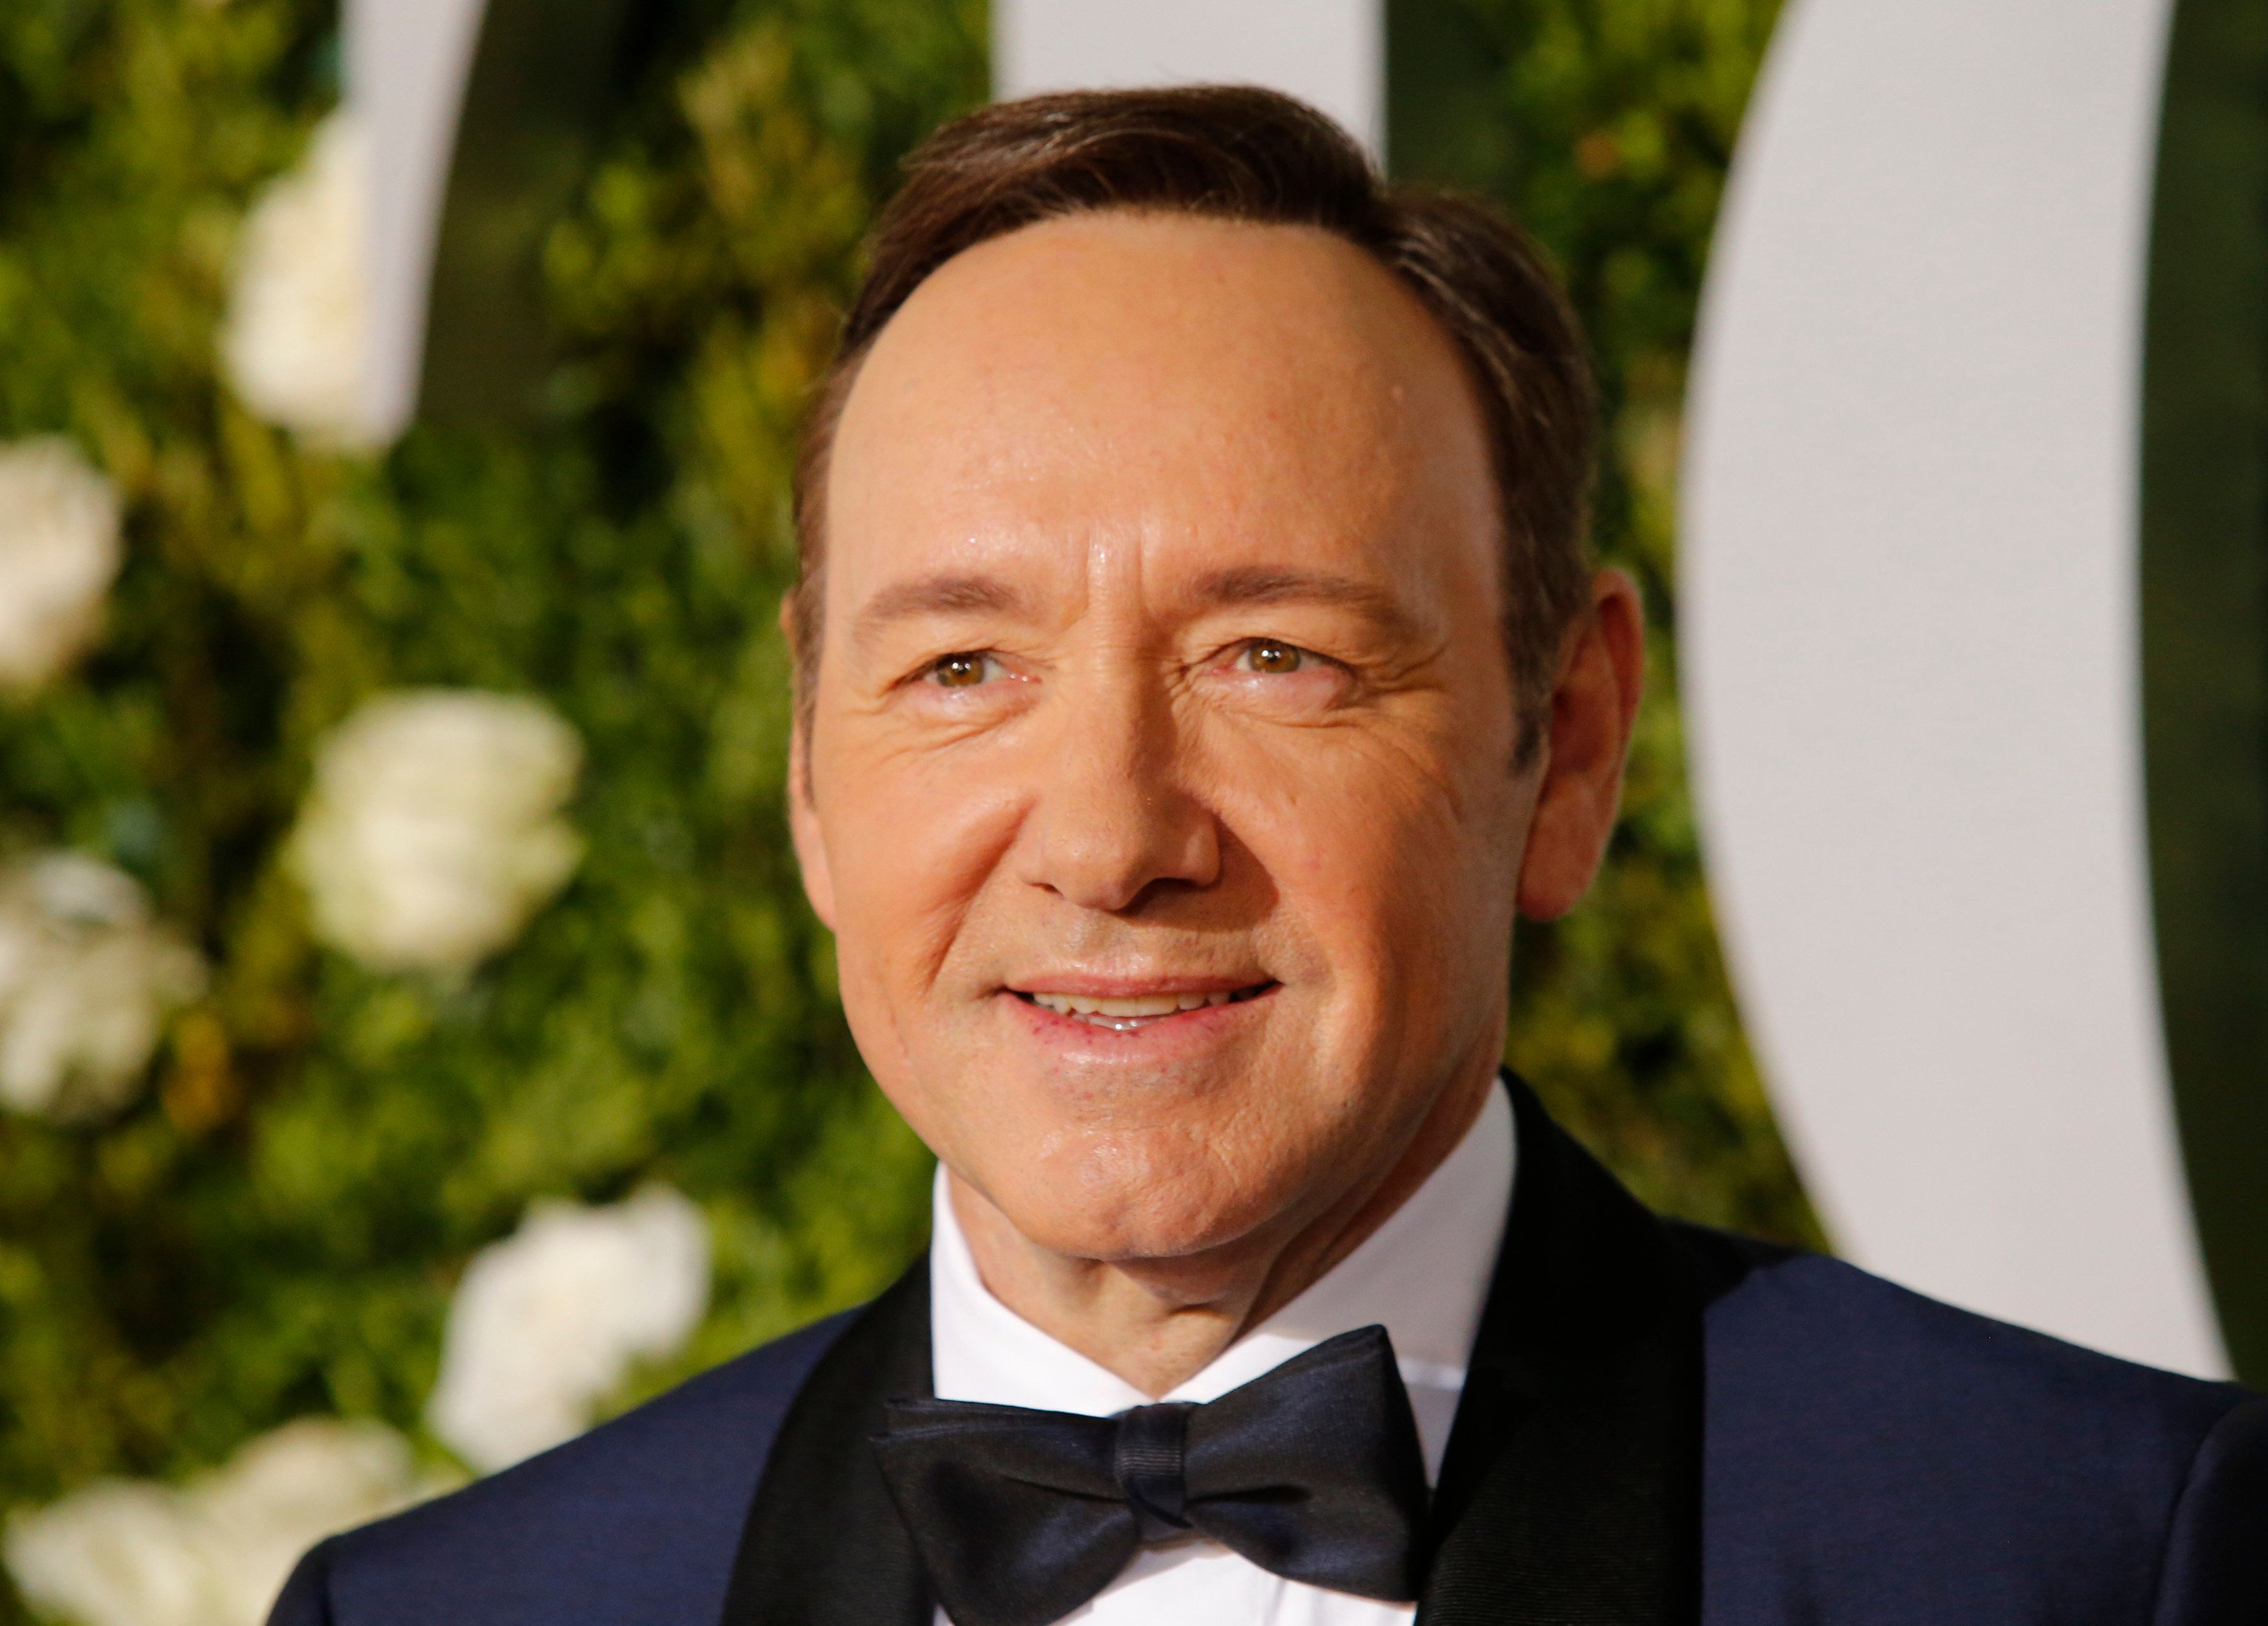 The nature and origin of the sexual assault accusation against actor Kevin Spacey was not disclosed.